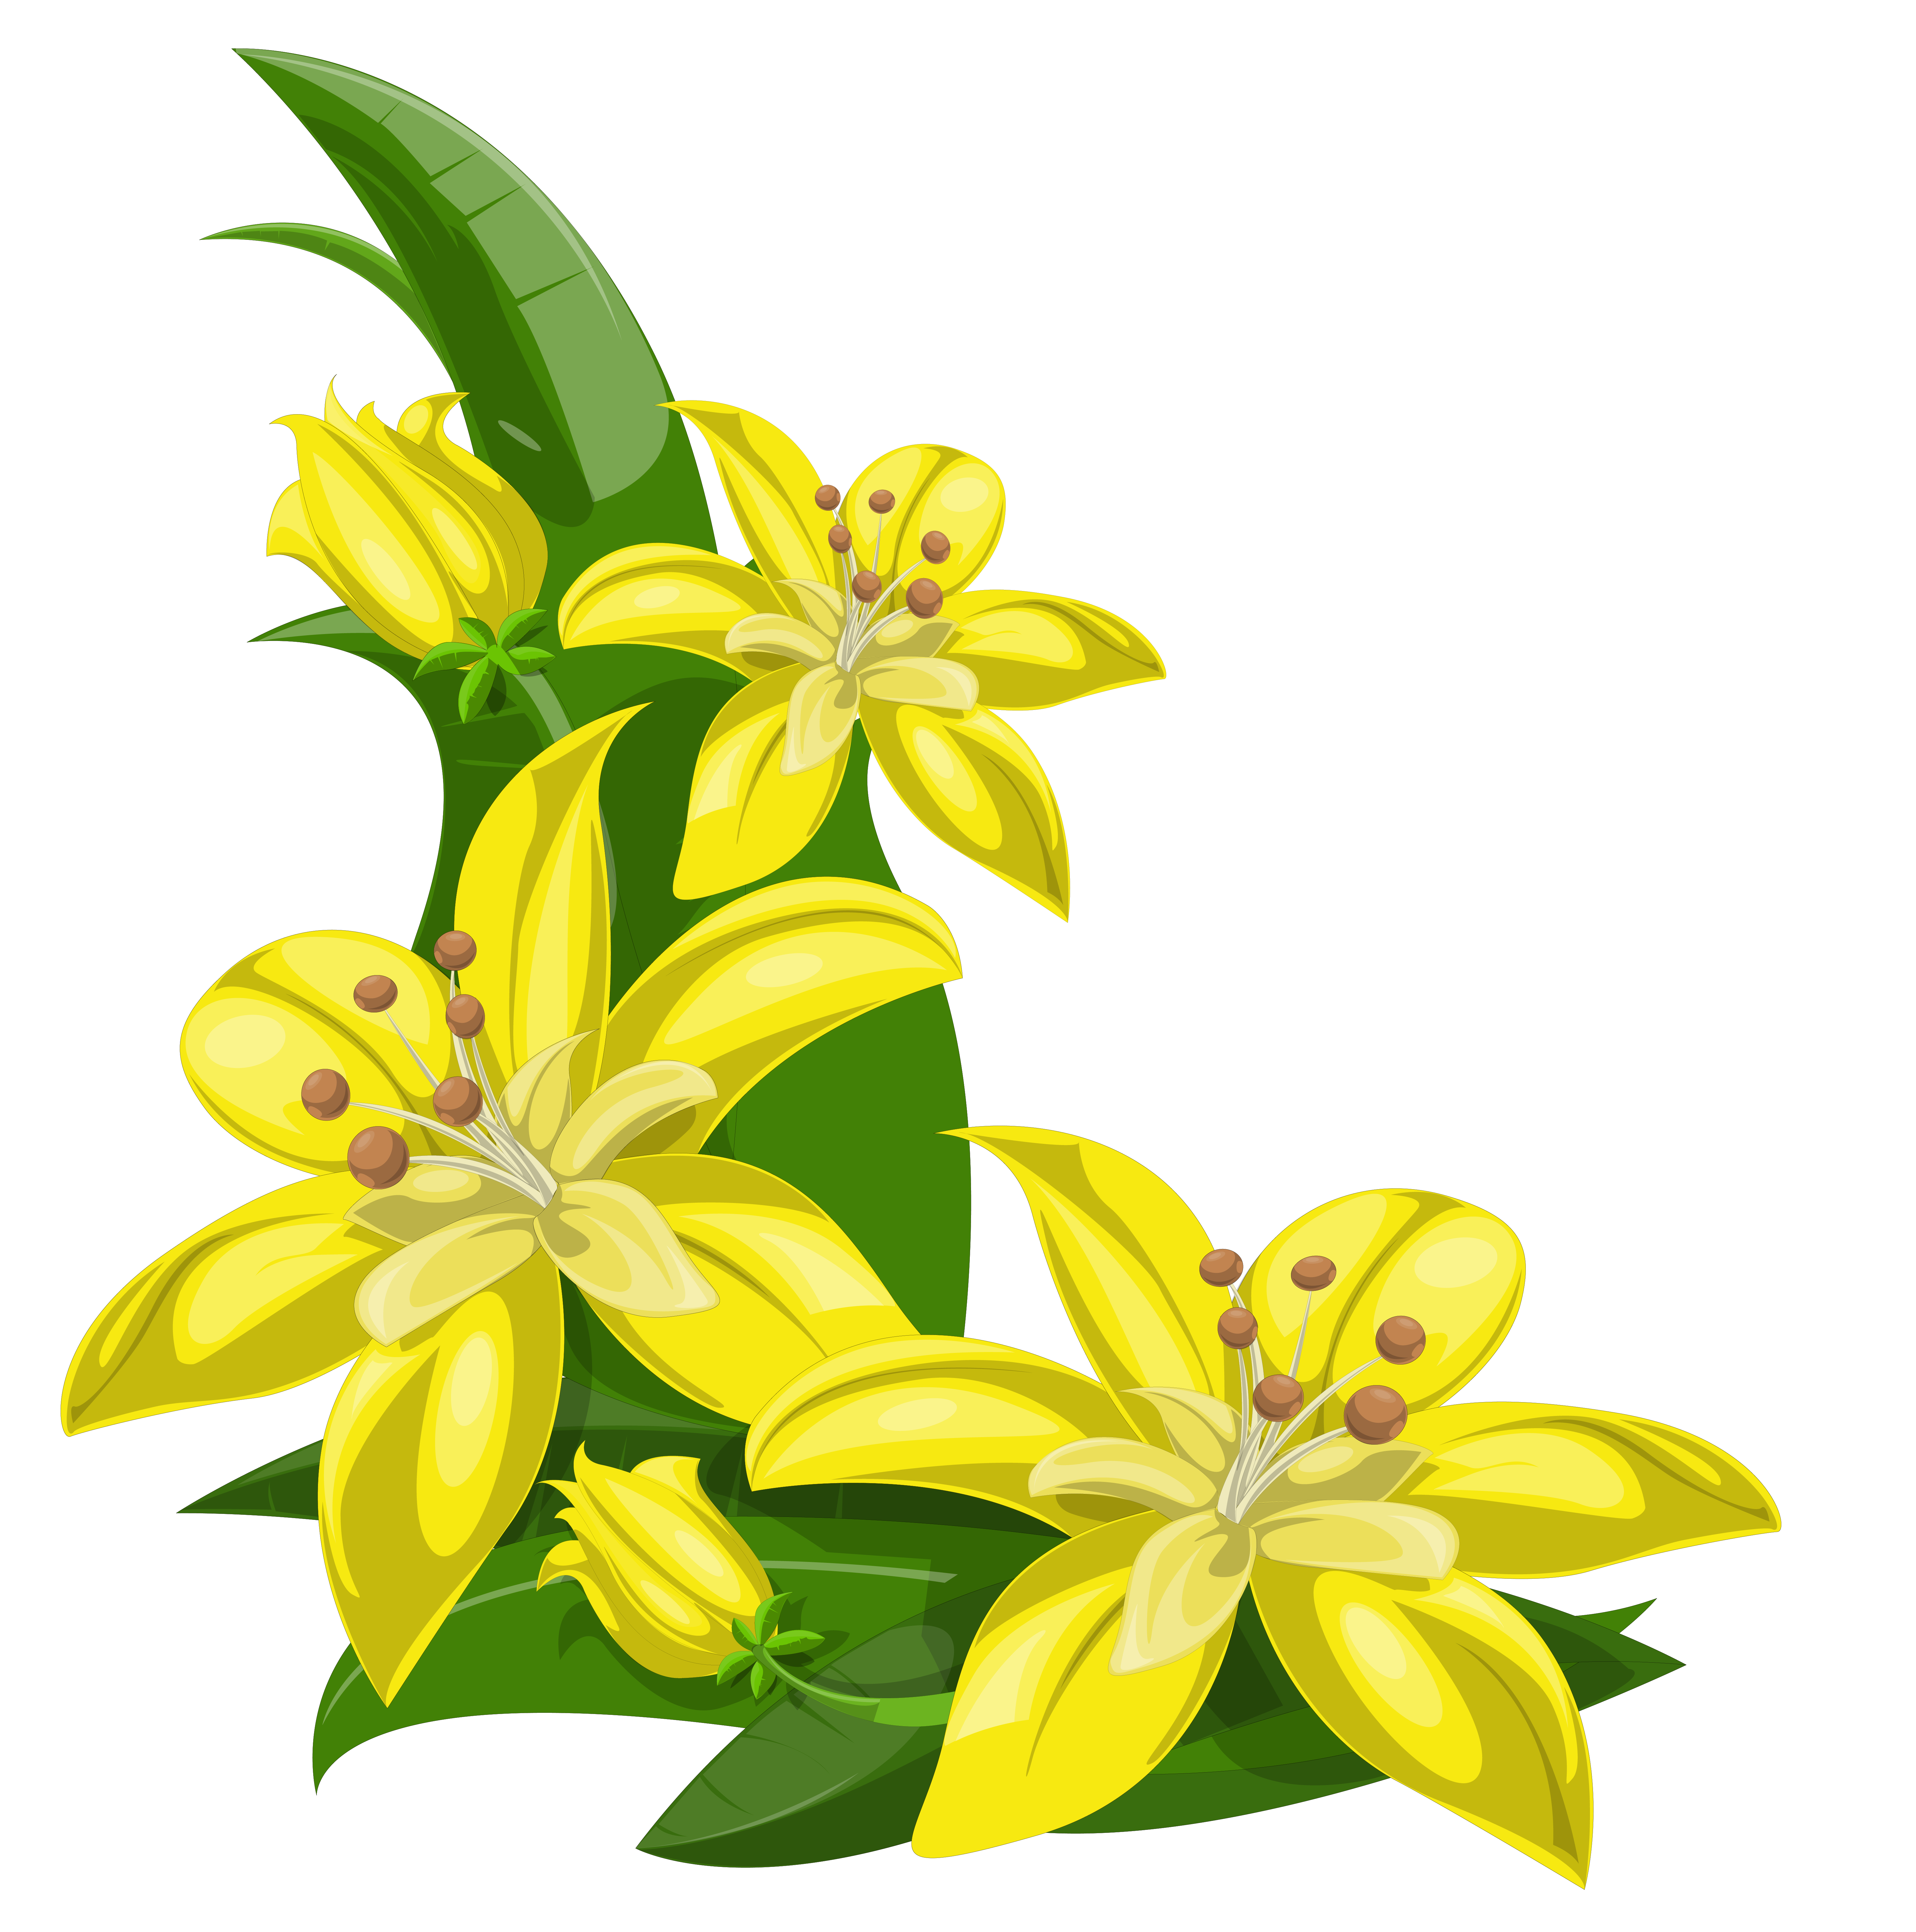 Lily flowers clipart at getdrawings free for personal use lily 6417x6469 flower decorations clipart amp flower decorations clip art images izmirmasajfo